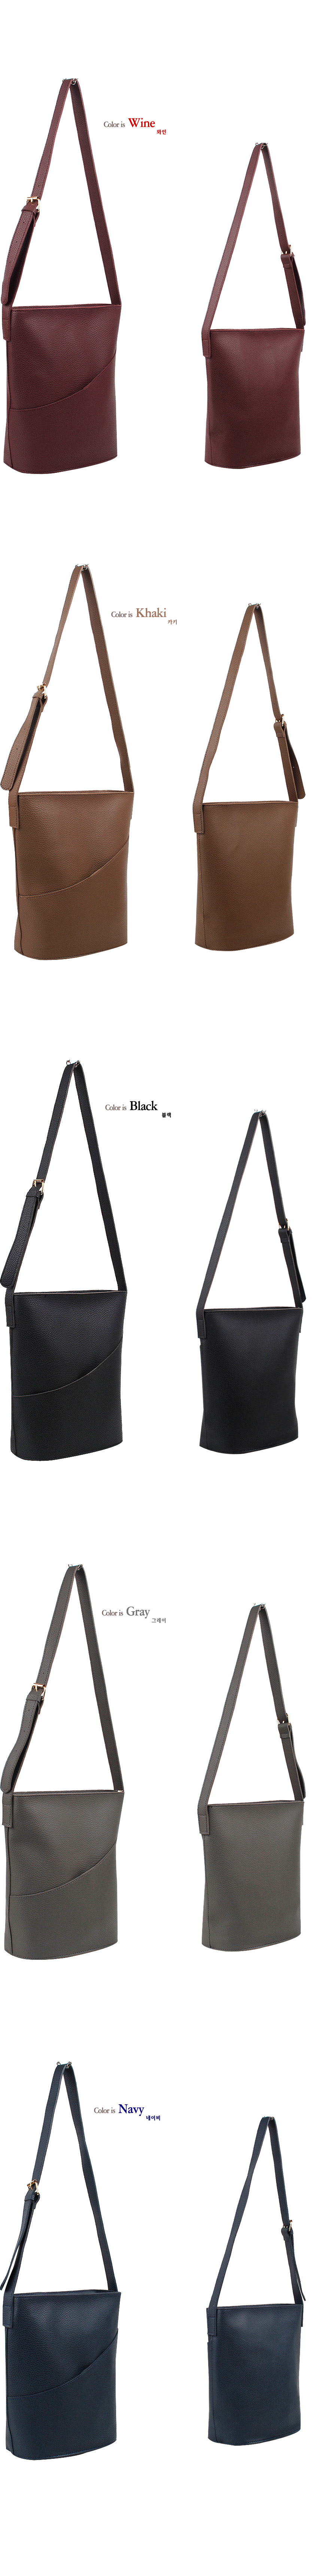 숄더&토드백,Shoulder&tote bag.